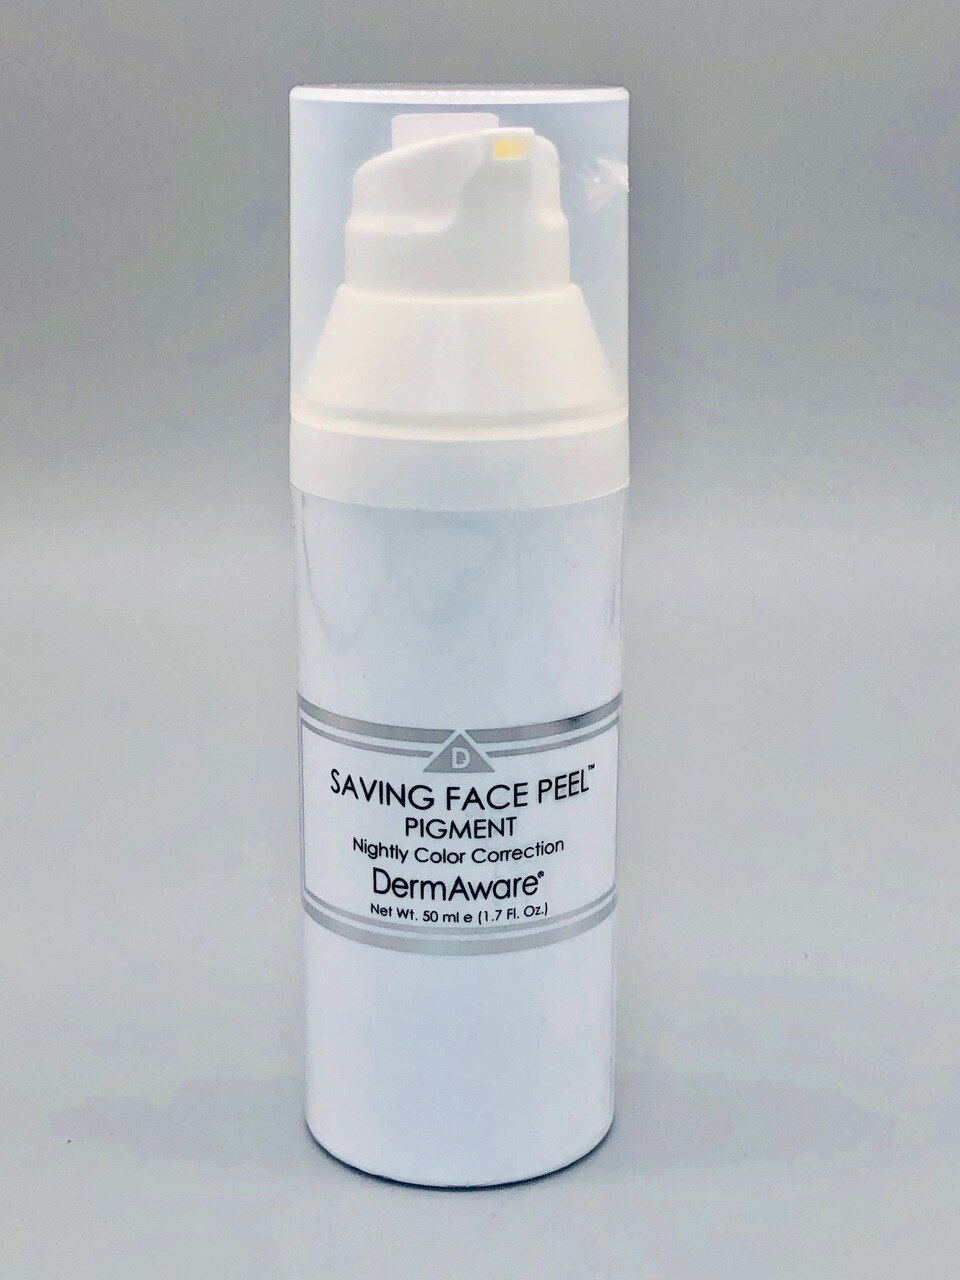 Saving Face Peel - PIGMENT